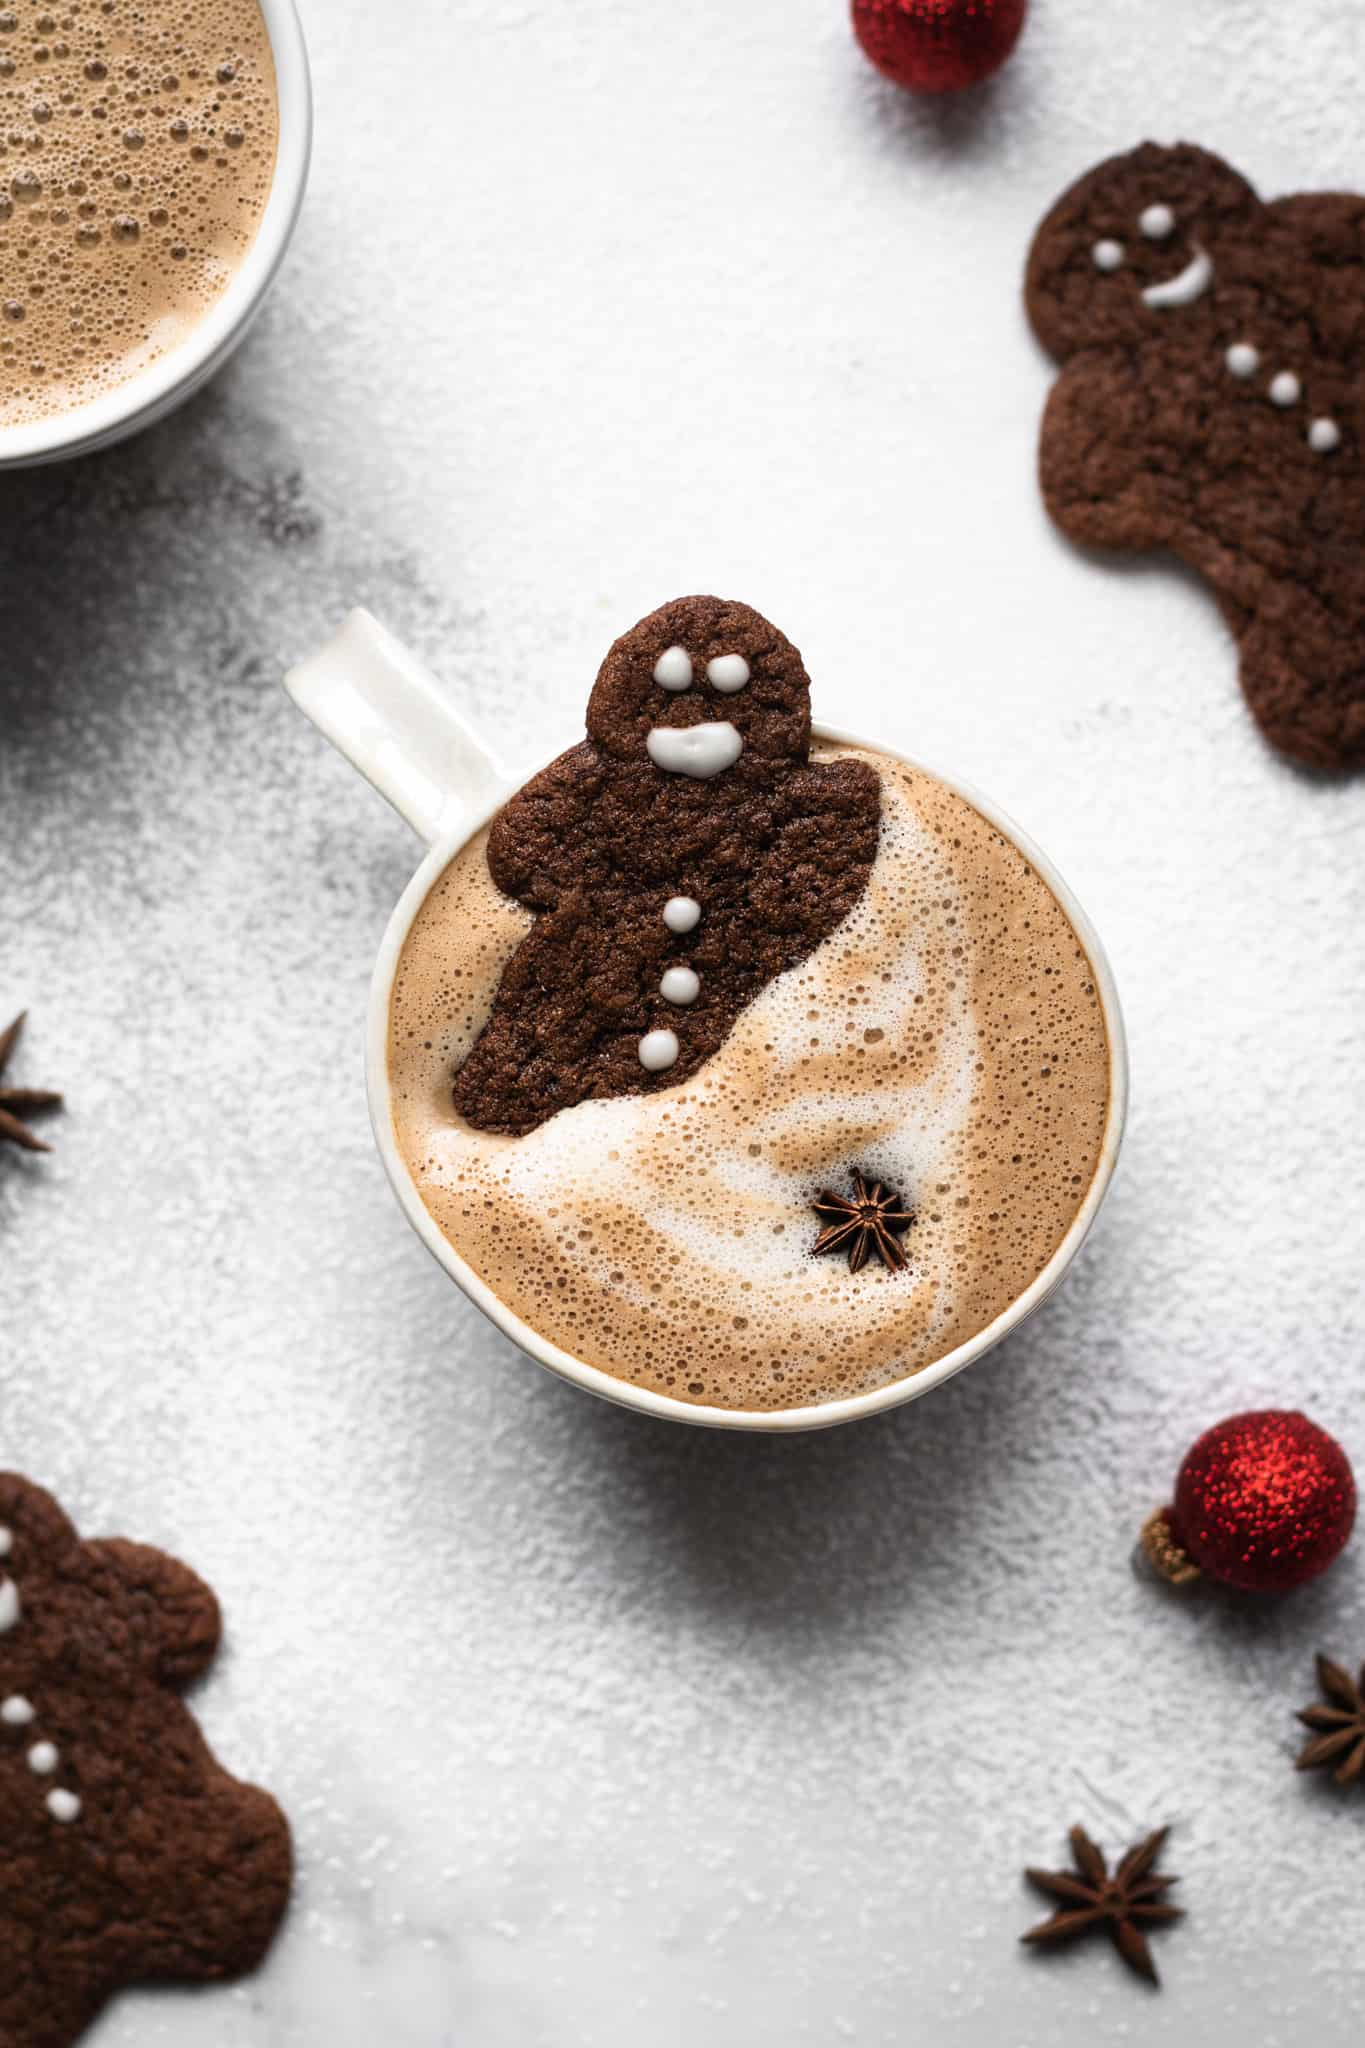 gingerbread latte in a cup with gingerbread man